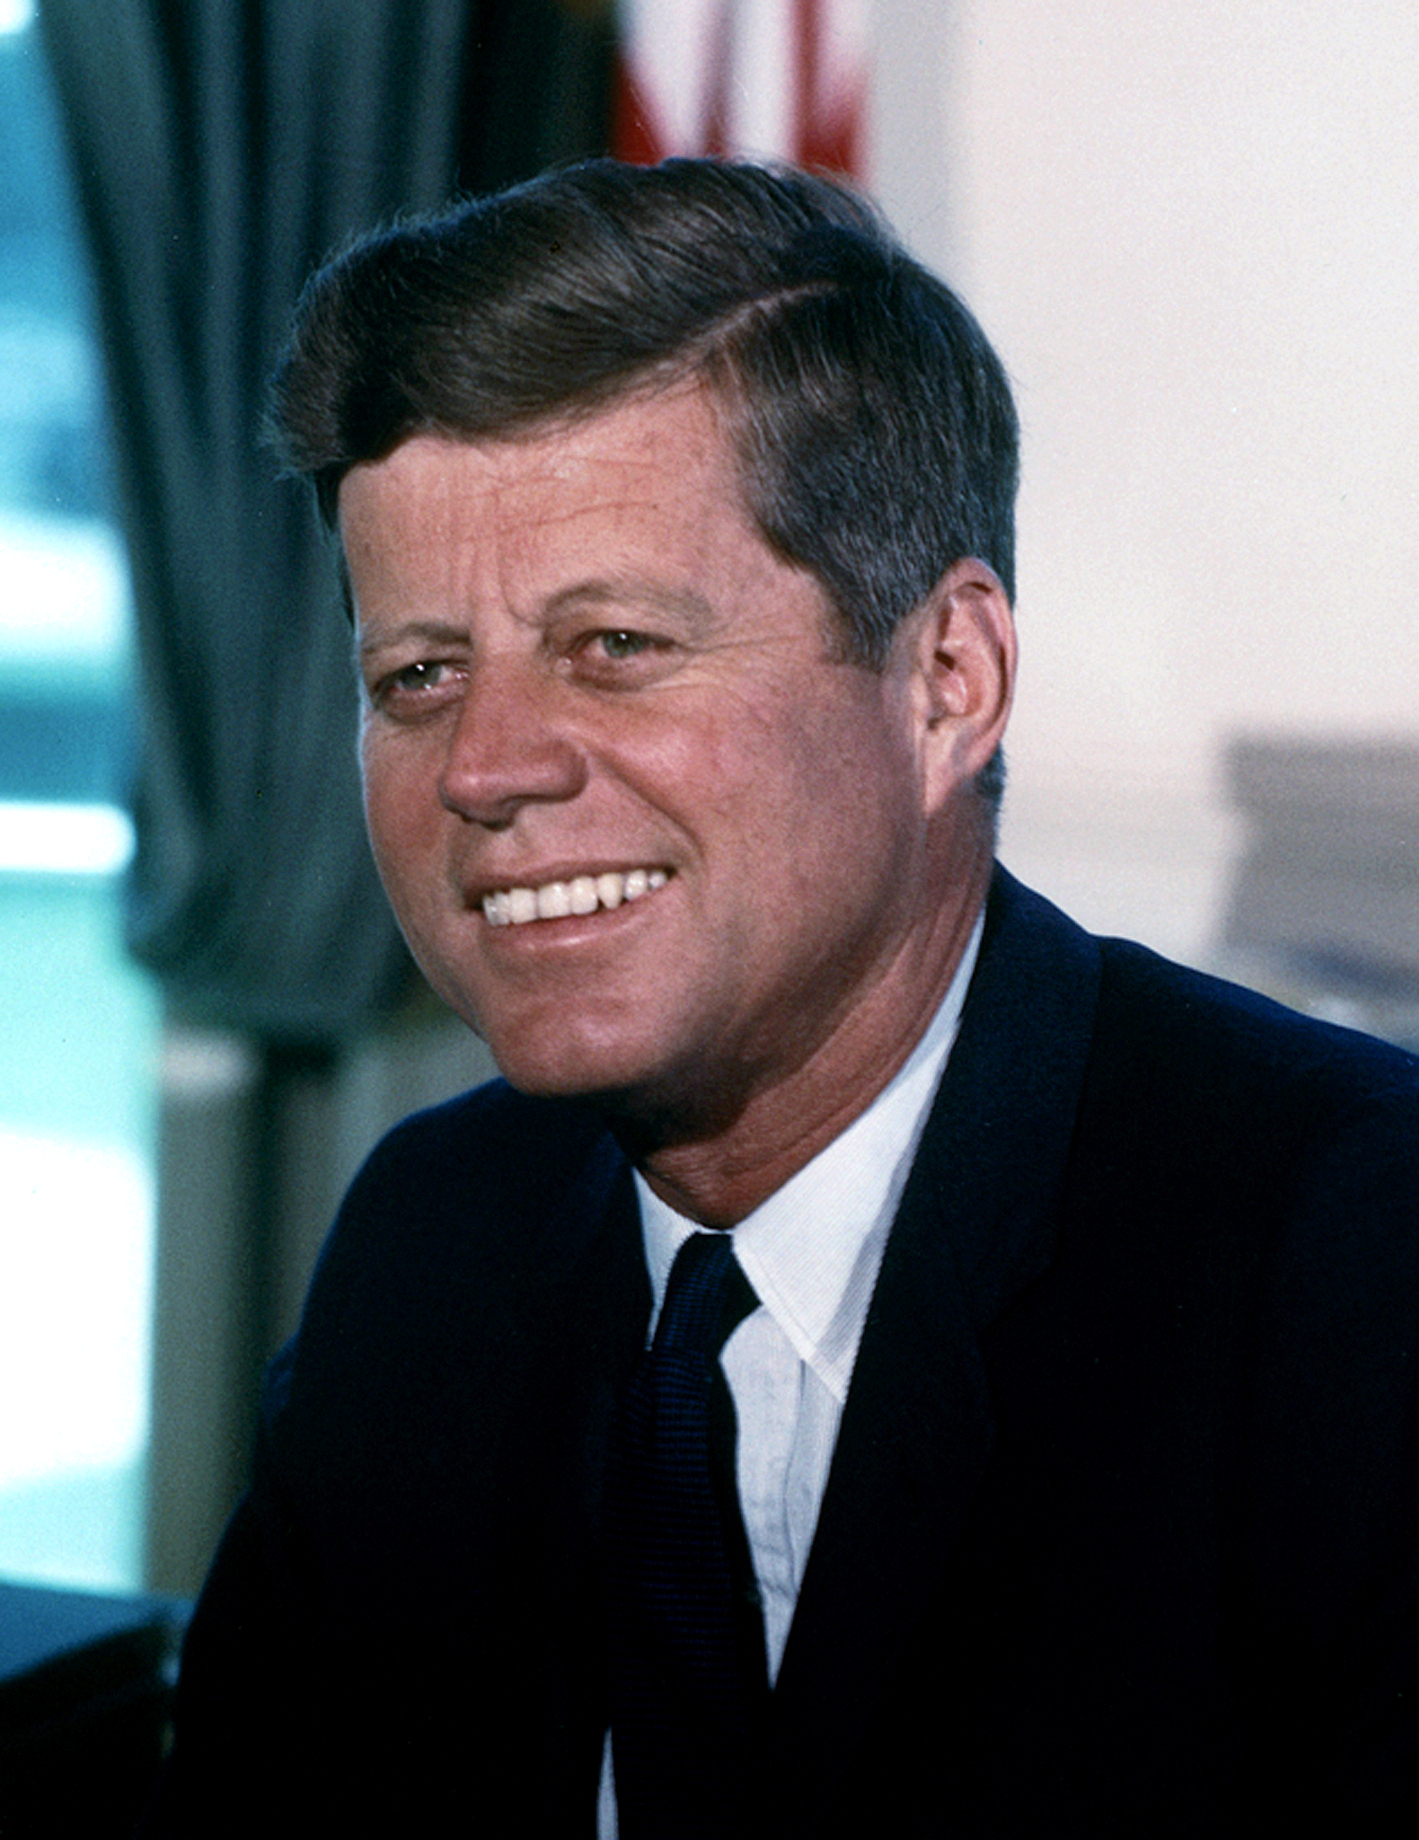 Photograph of John F. Kennedy